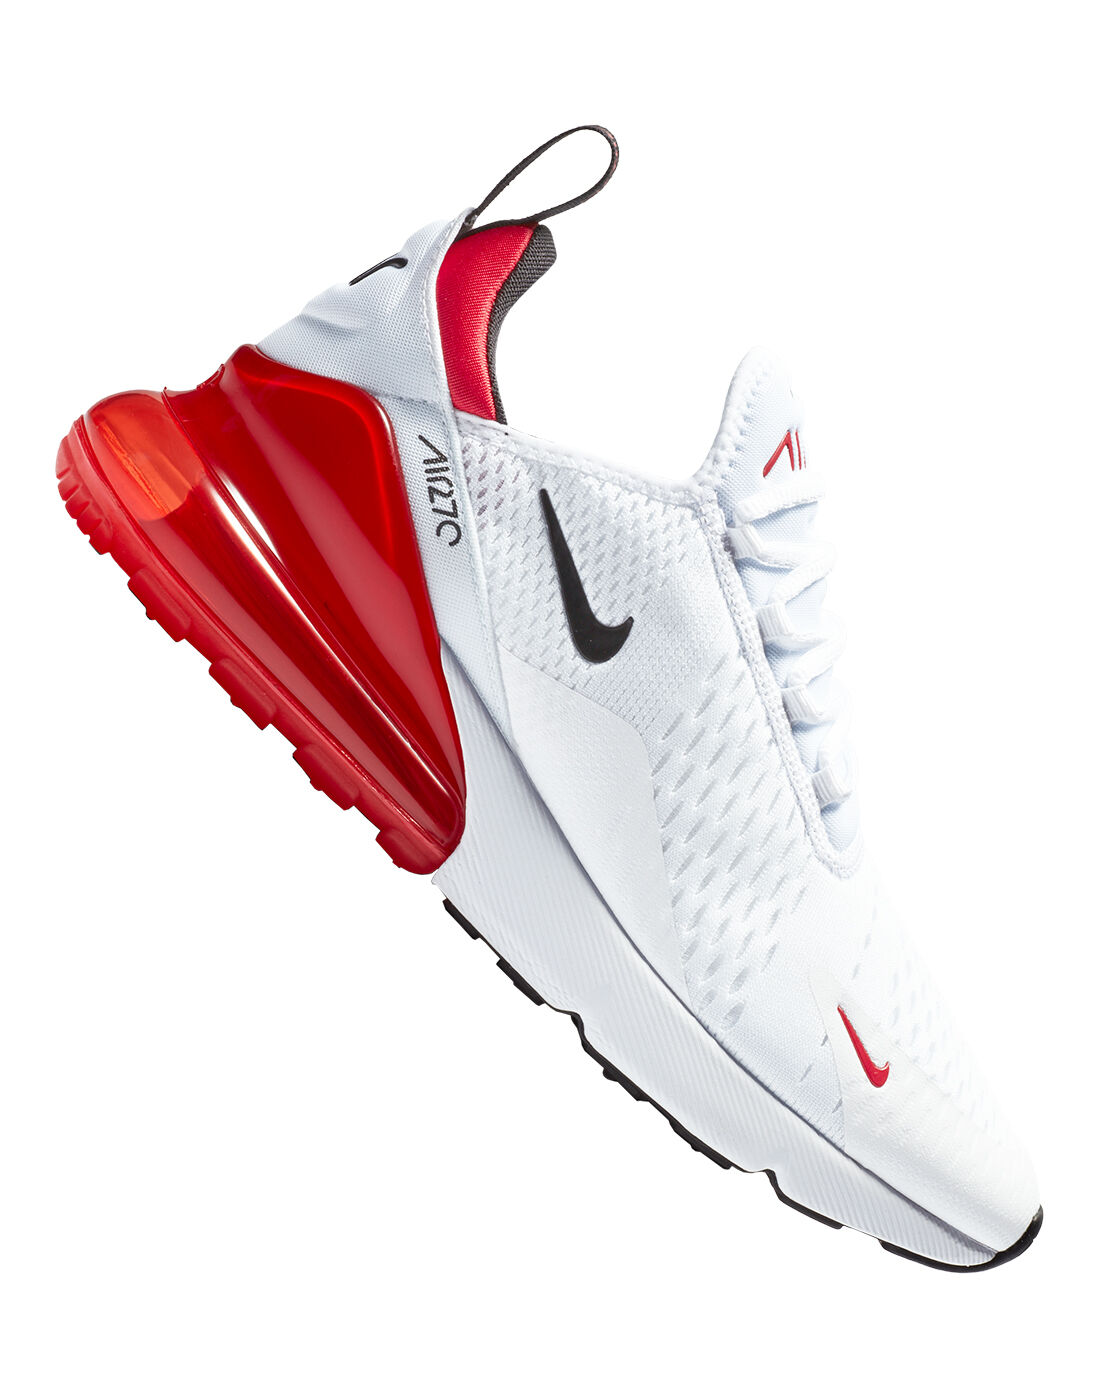 Men's White & Red Nike Air Max 270 | Life Style Sports